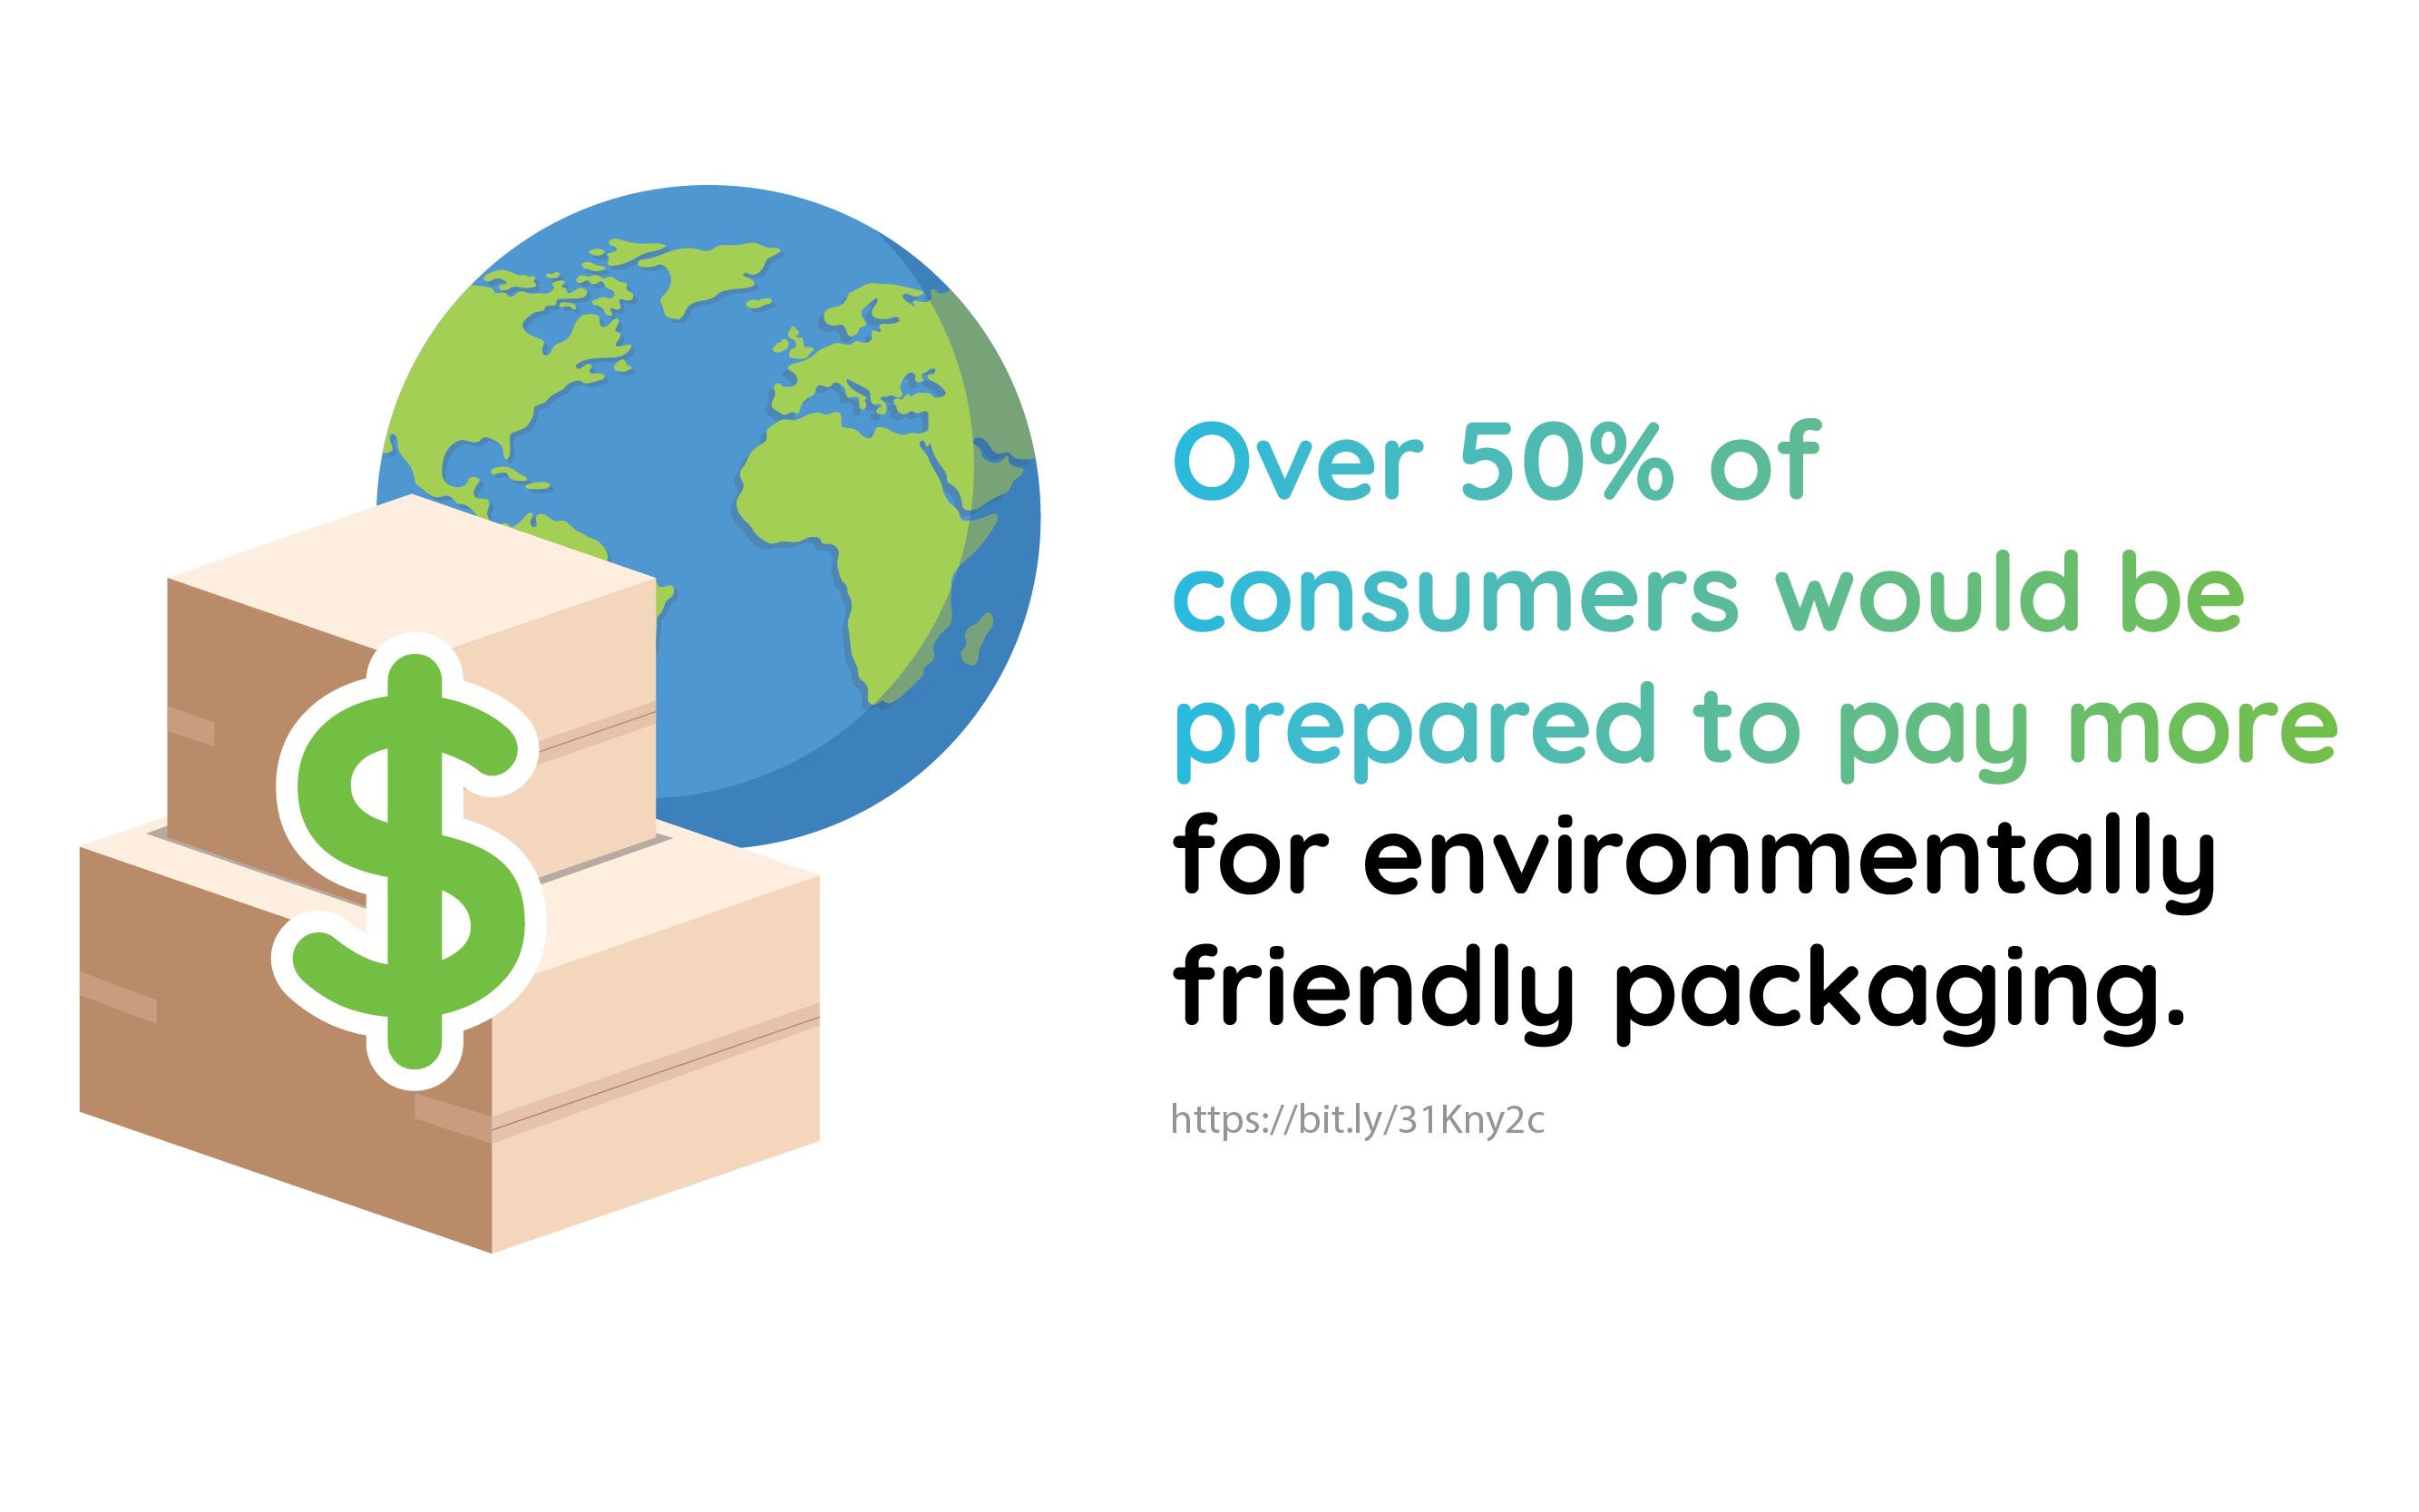 Over 50% of consumers would be prepared to pay more for environmentally friendly packaging